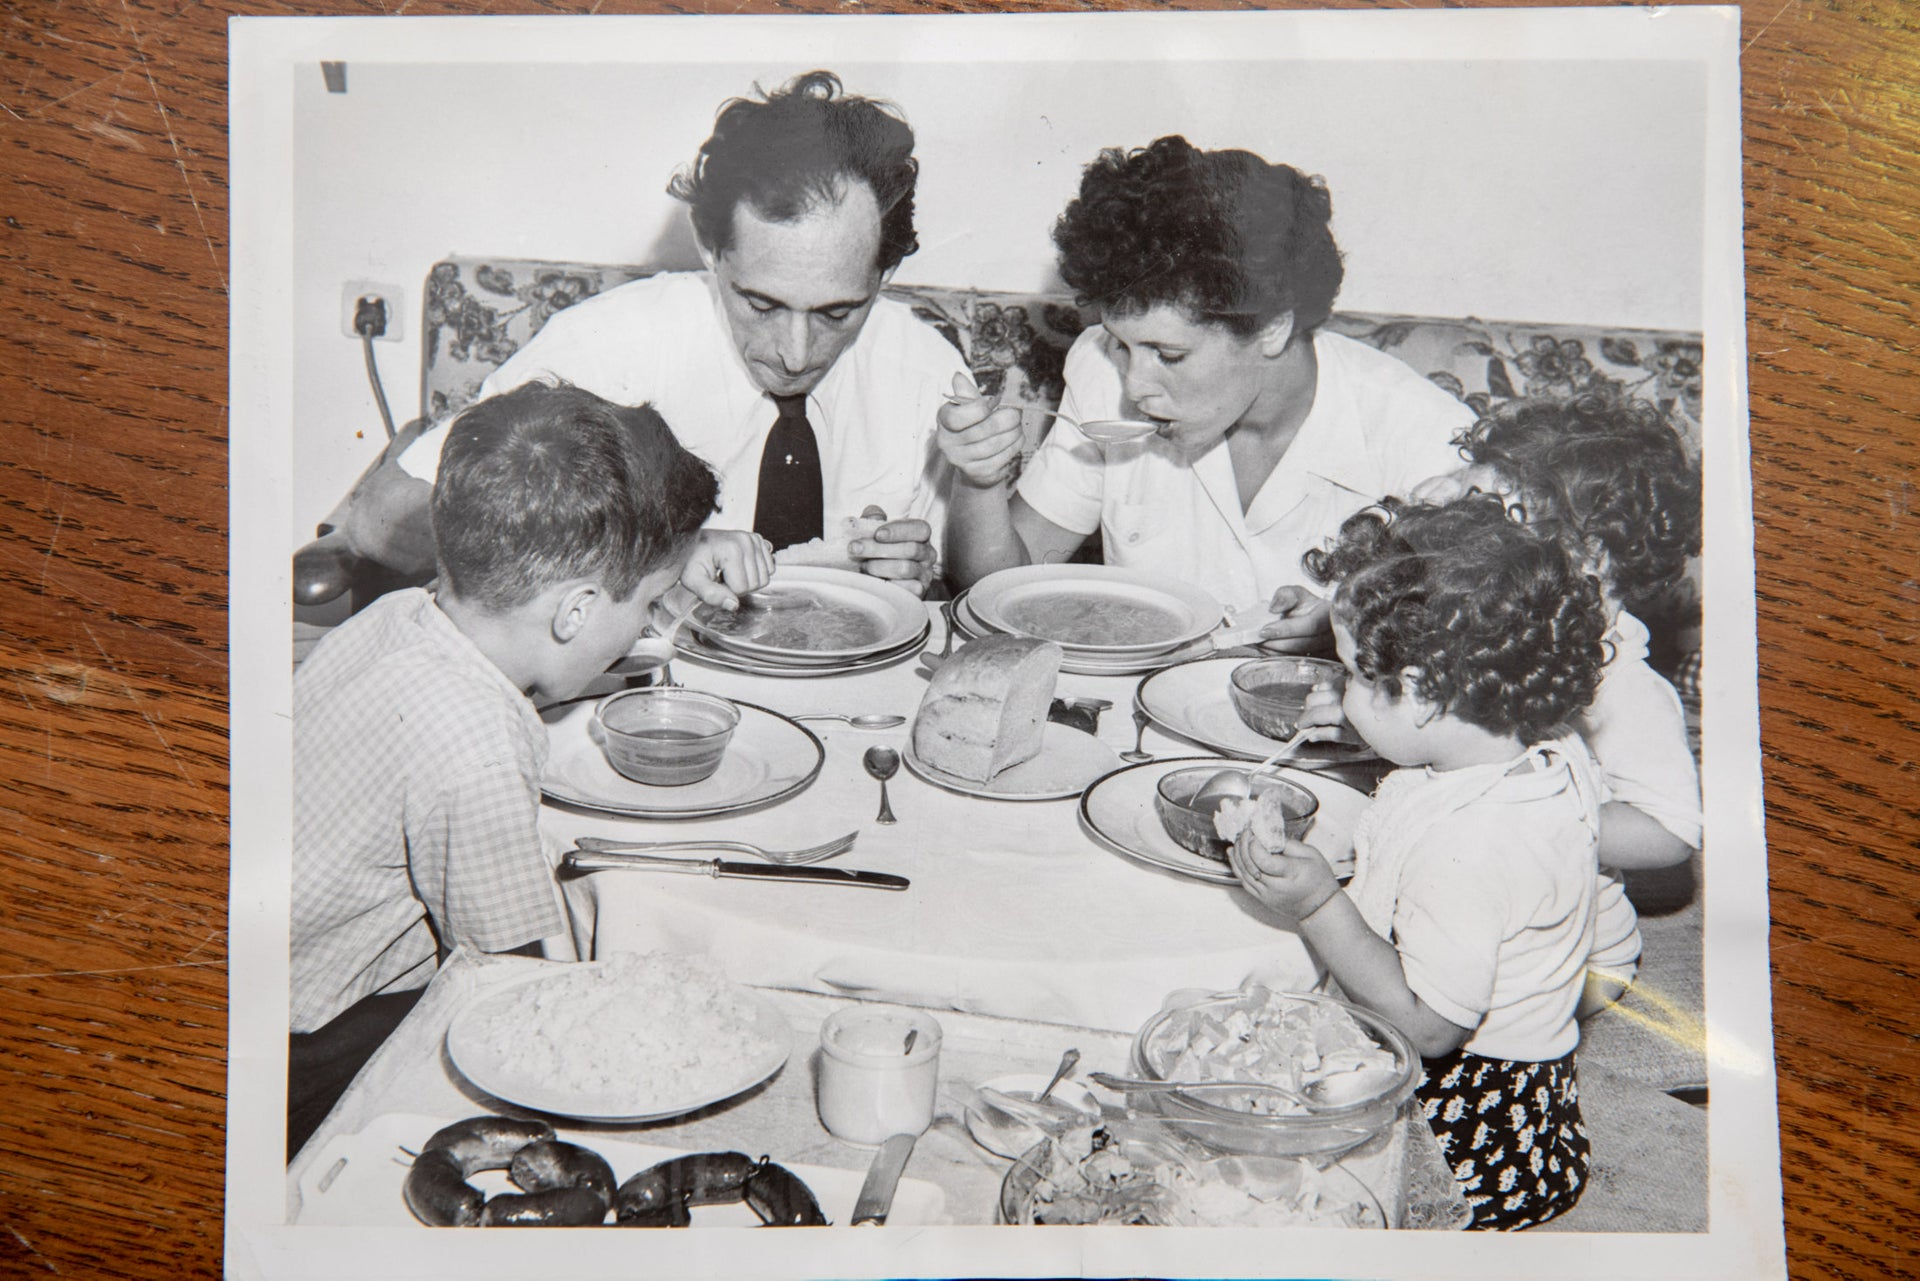 The members of Steiner  family sit down to their meal in Tel Aviv during the years of austerity, December 6, 1949.